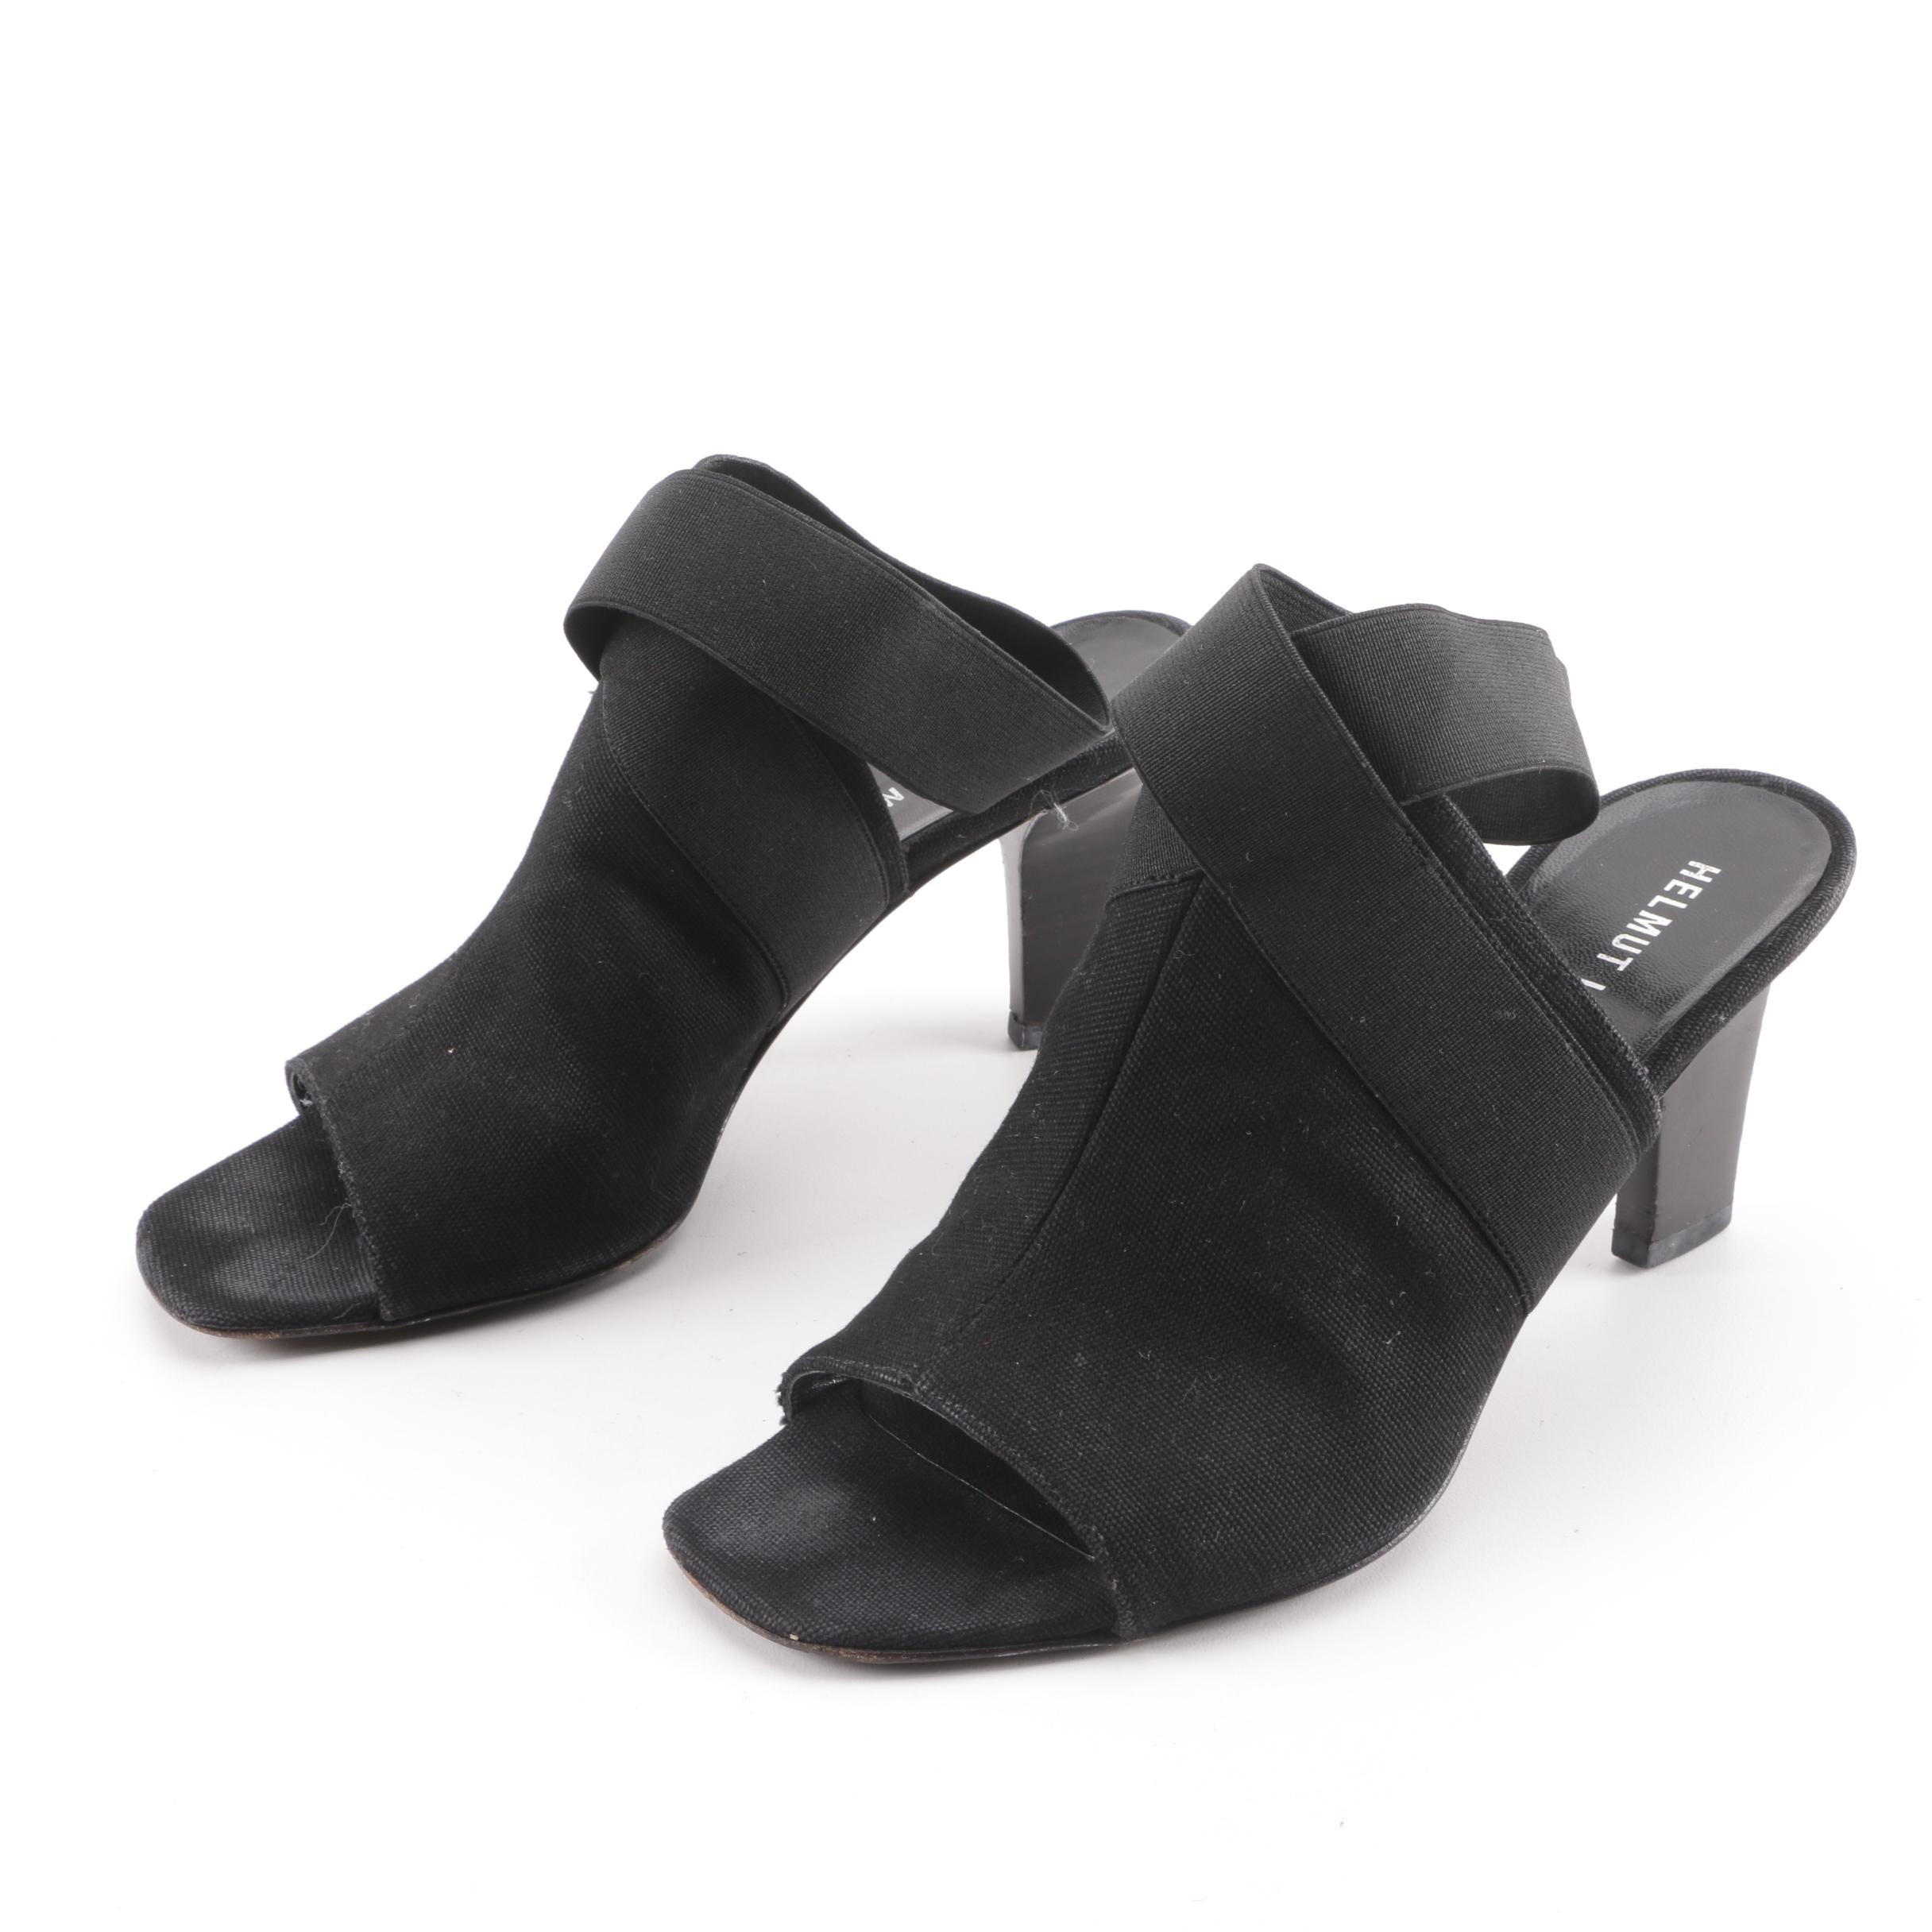 Helmut Lang Black Canvas Crossover Ankle Strap Open-Toe Heels